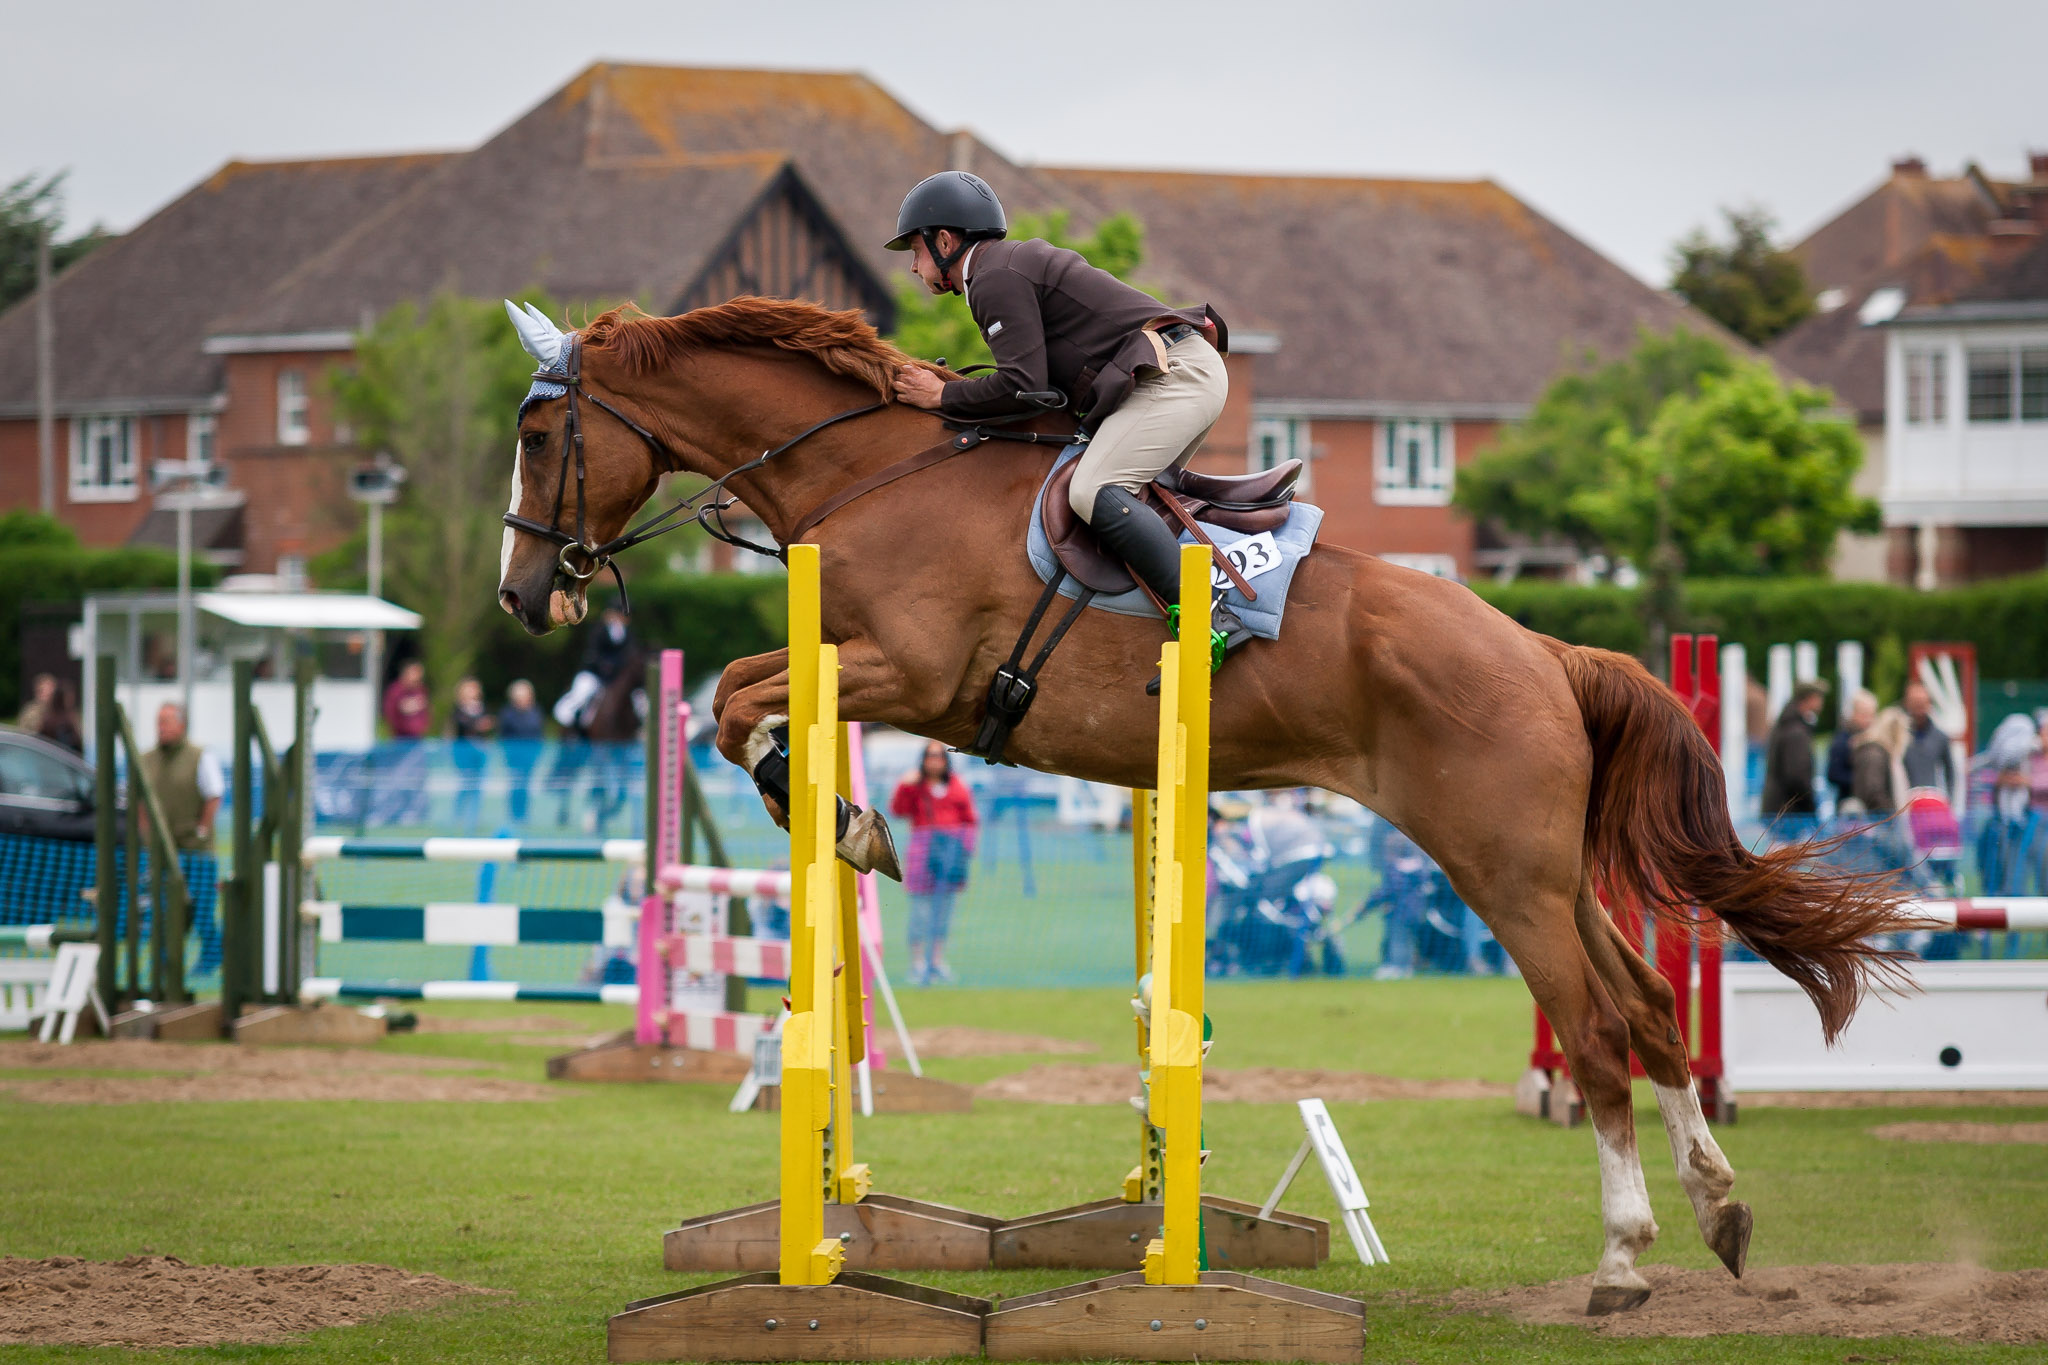 Bexhill Horse Show